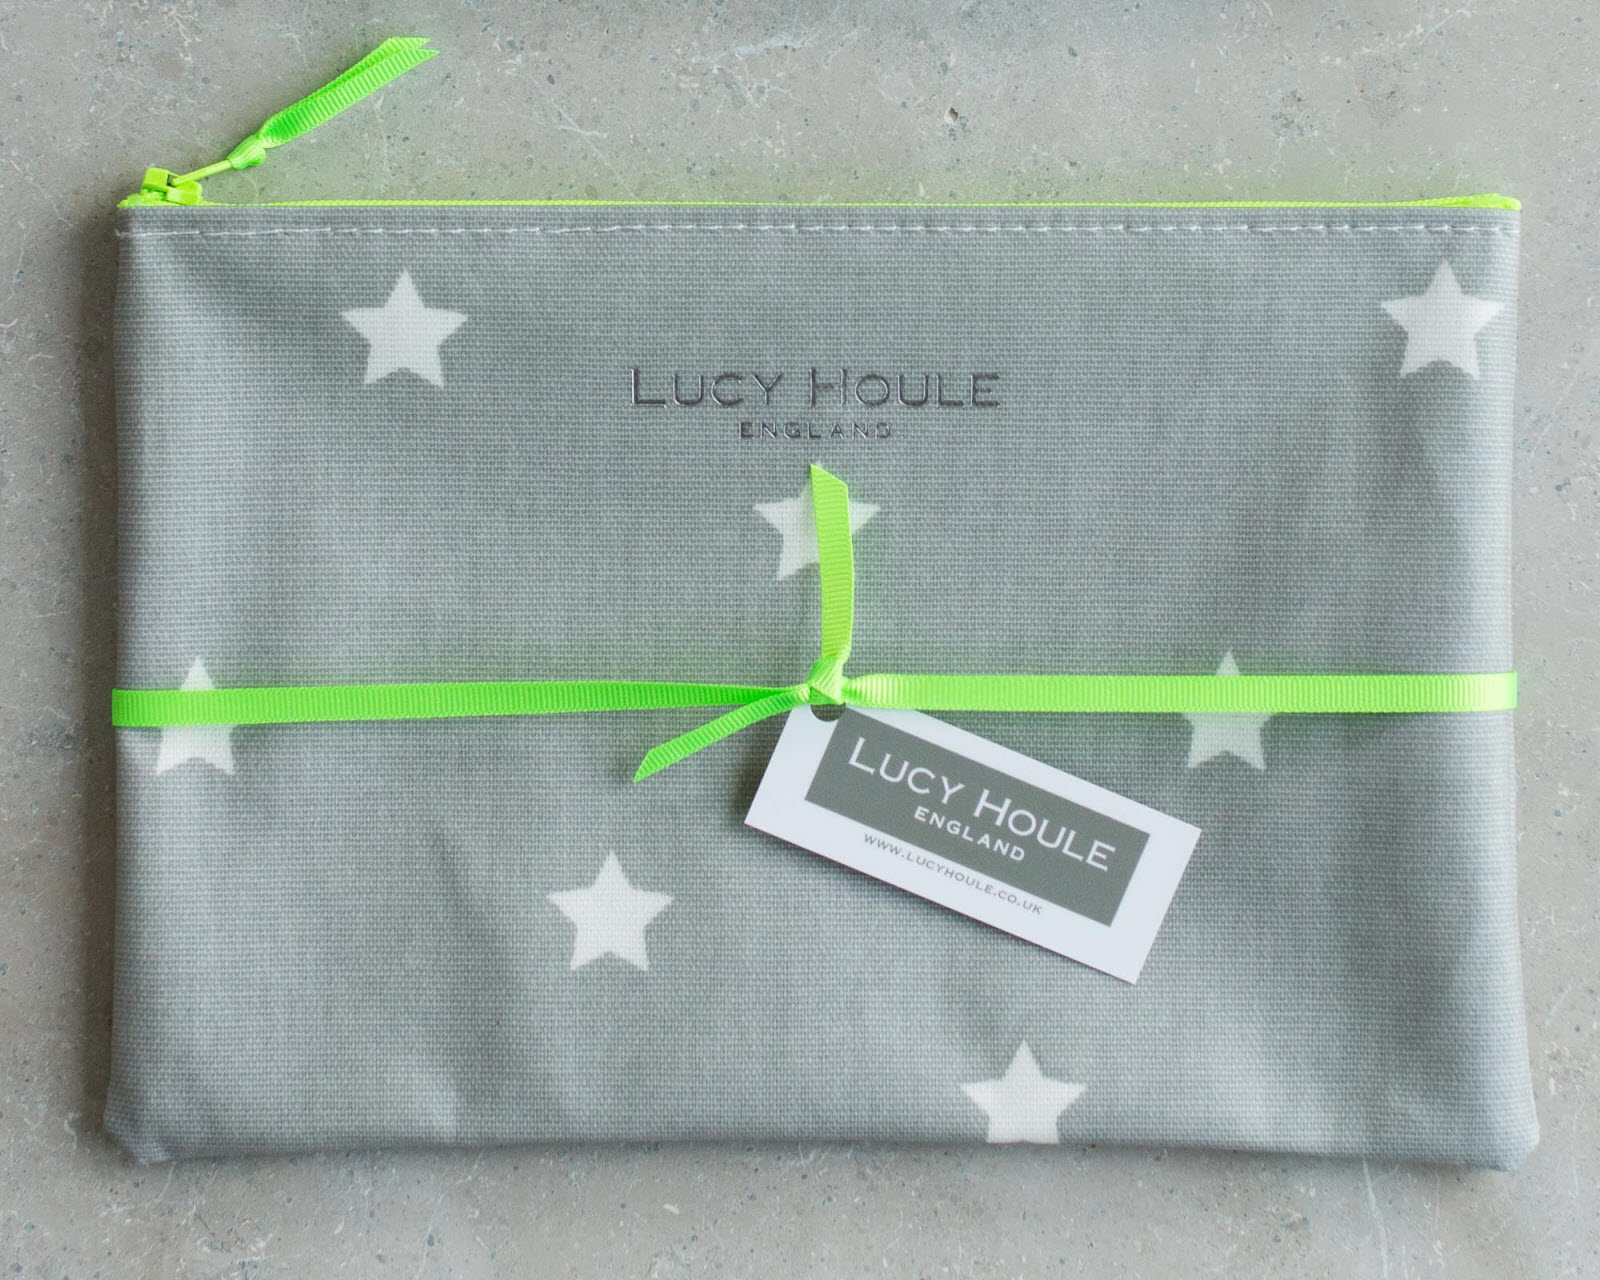 Grey & White Star Make-Up Bag with Green Neon Zip 'Limited Edition'